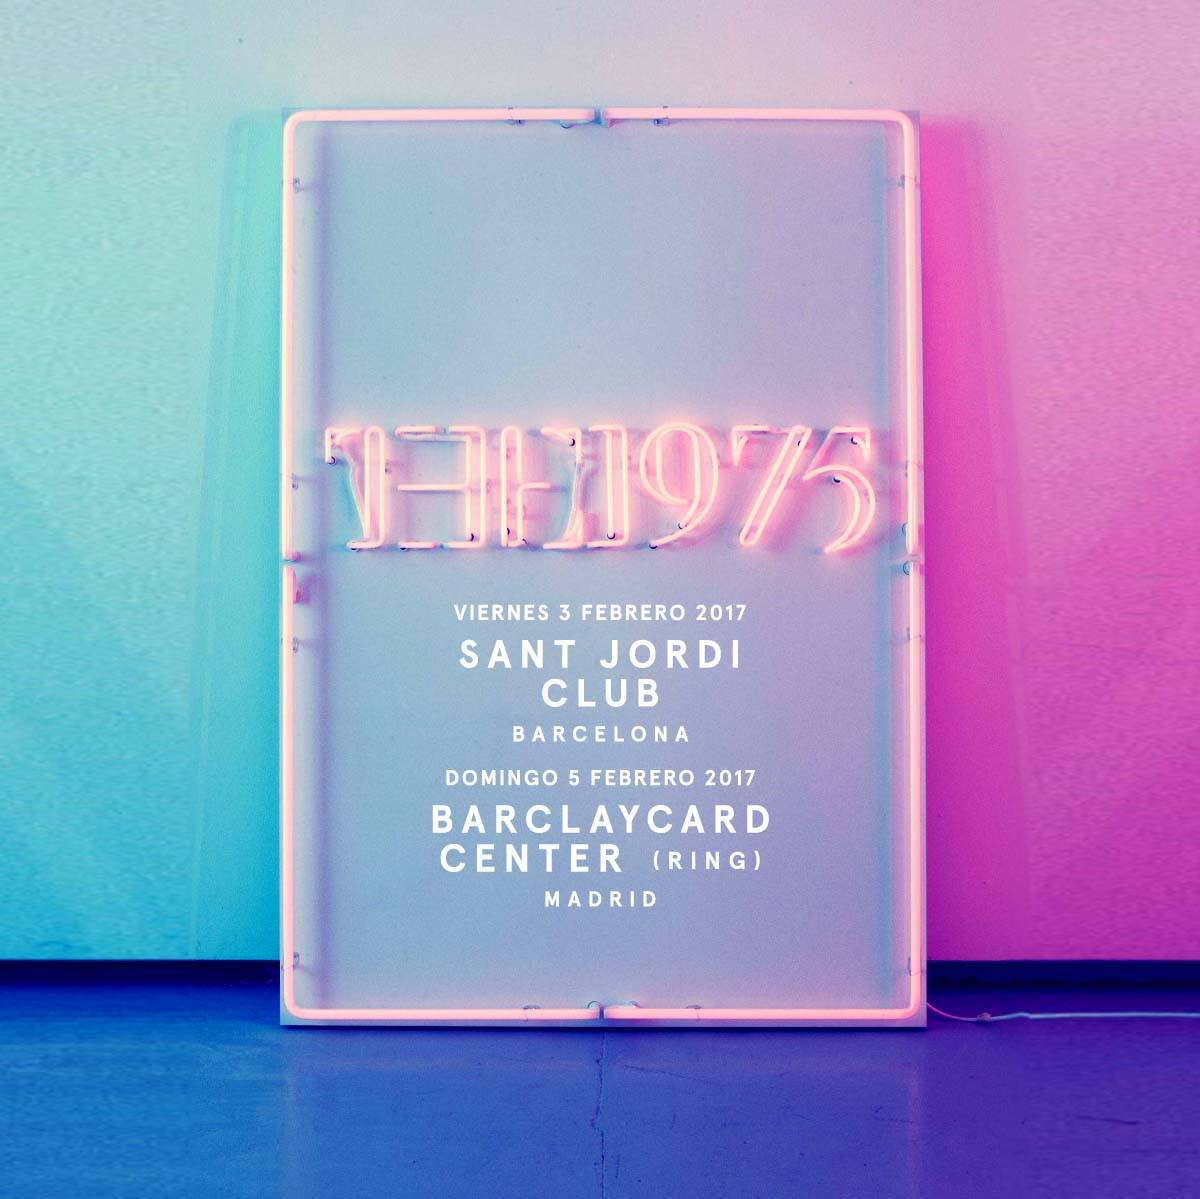 The 1975 posponen su gira europea